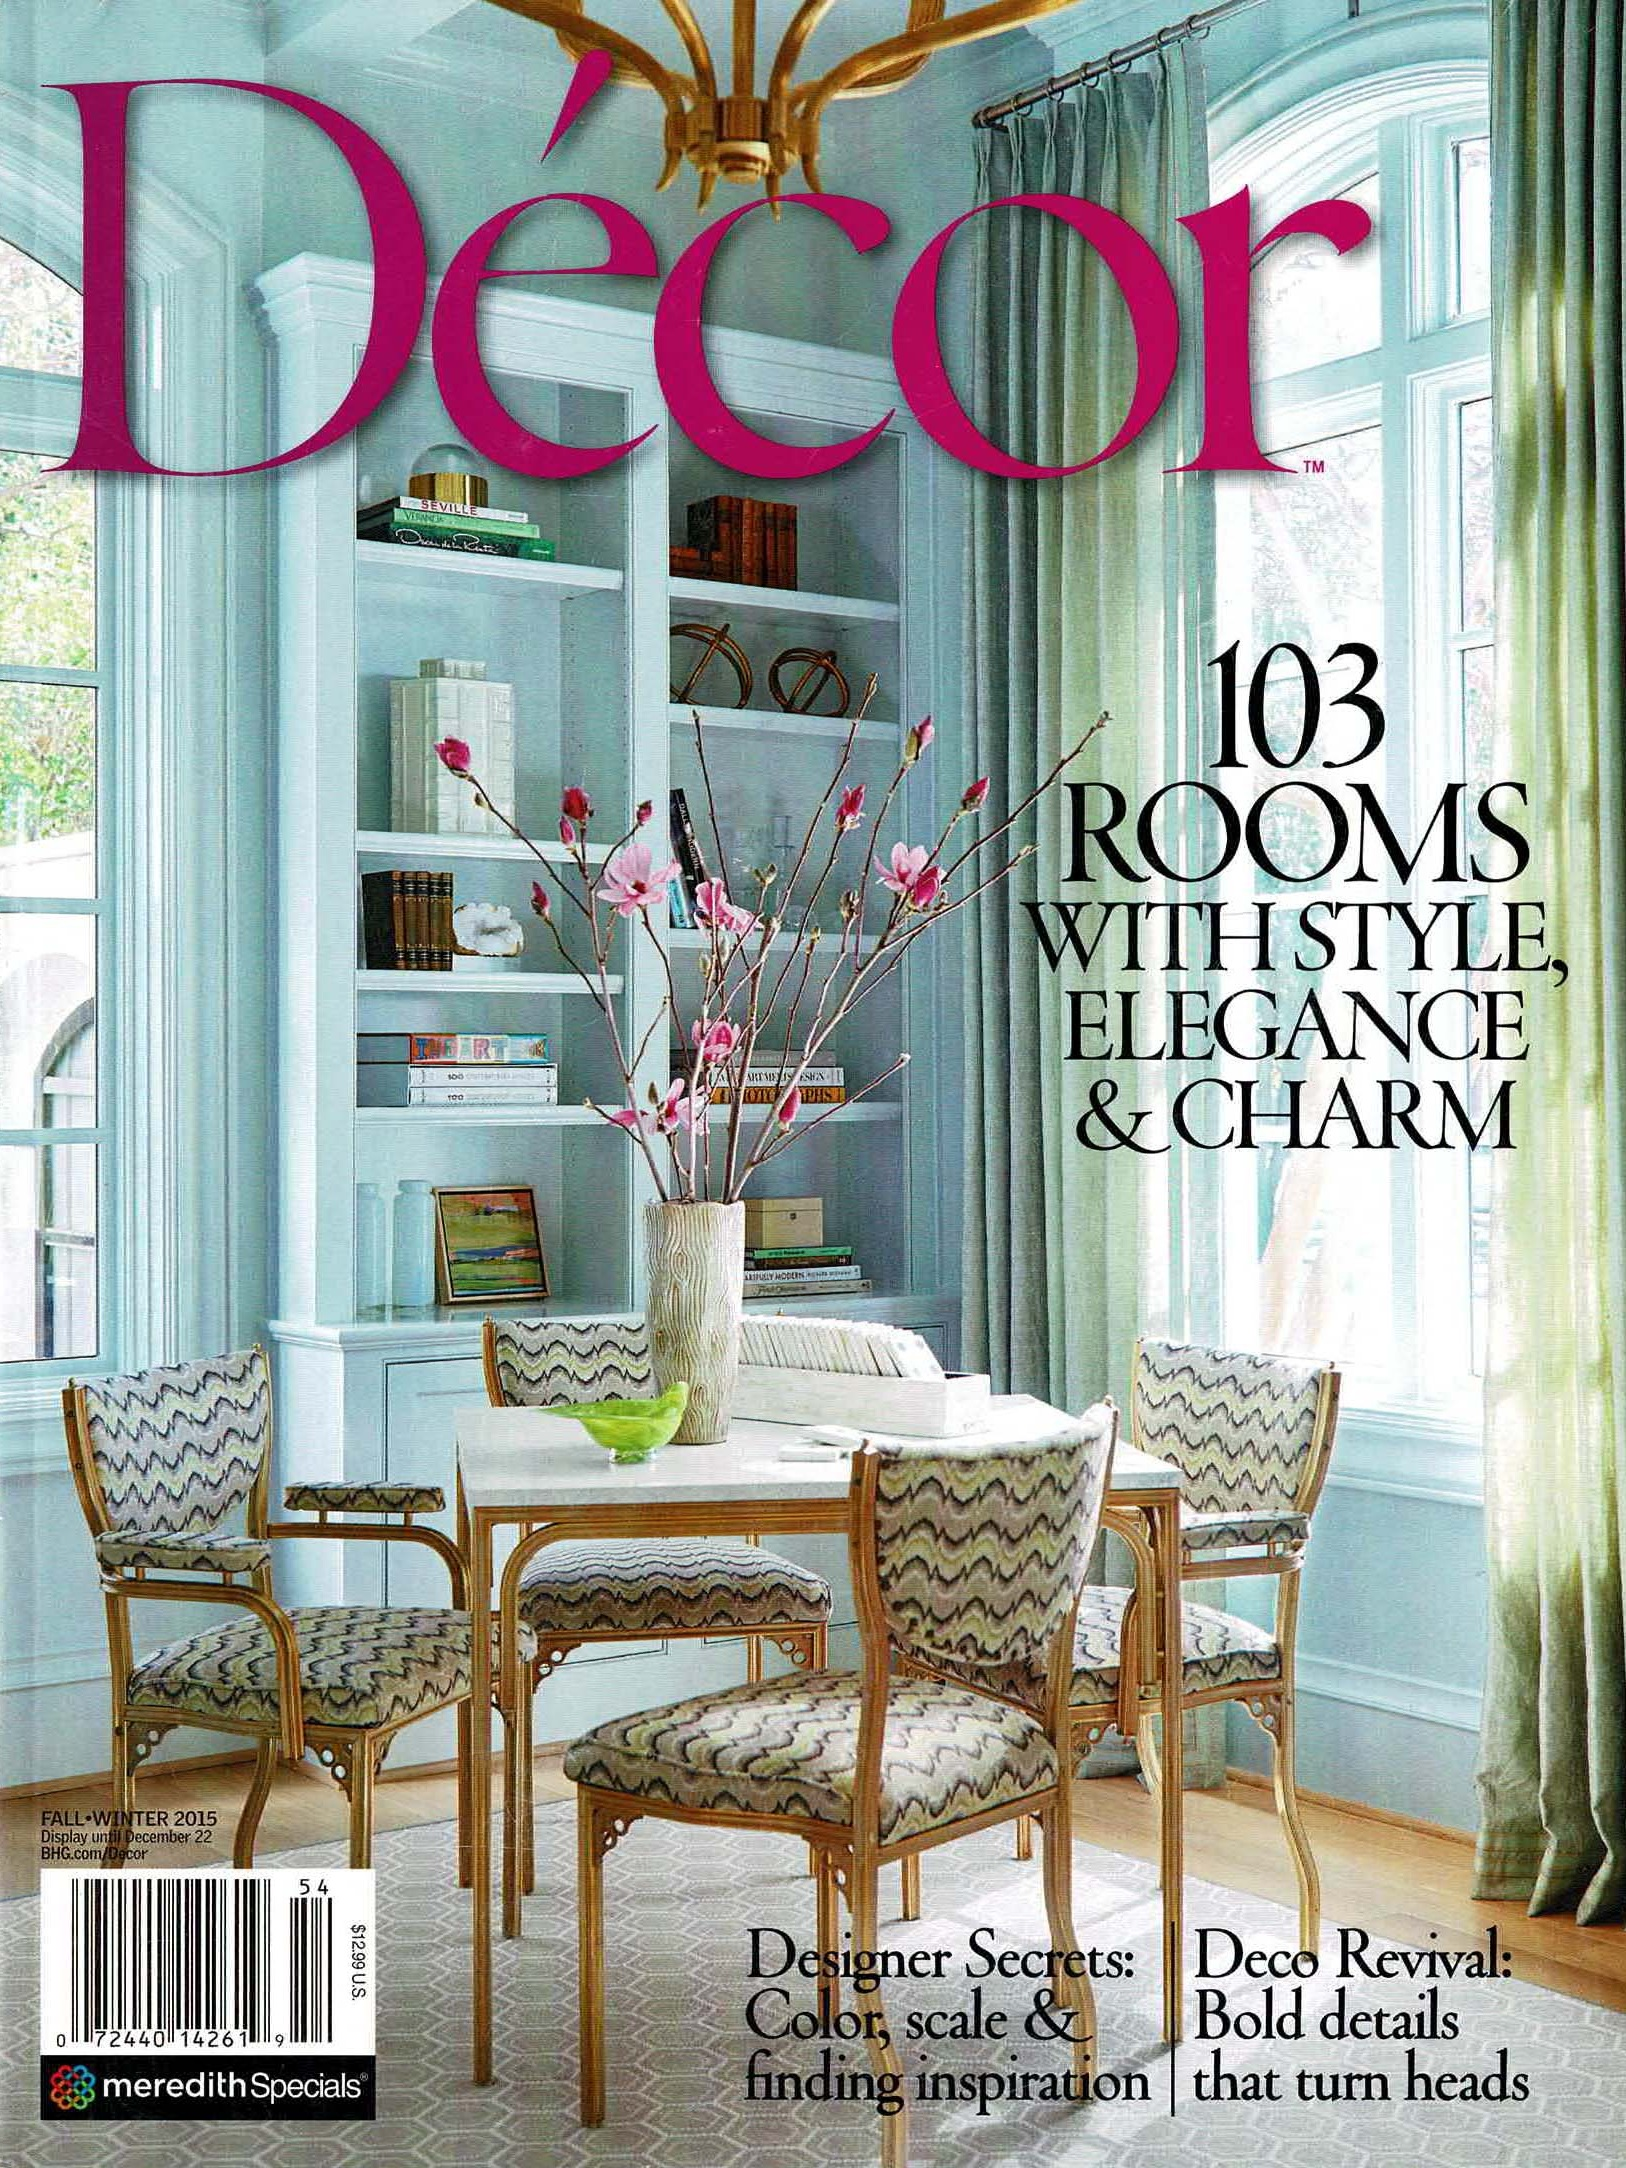 Decor-Cover.jpg